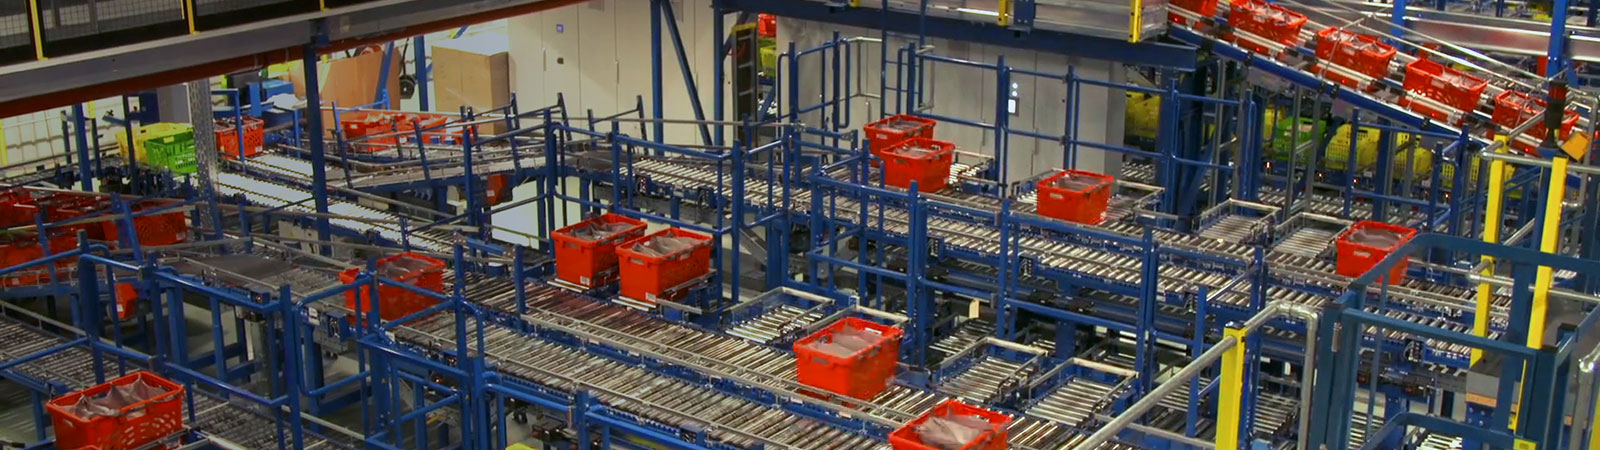 Case study Ocado, Warehouse automation - Altran